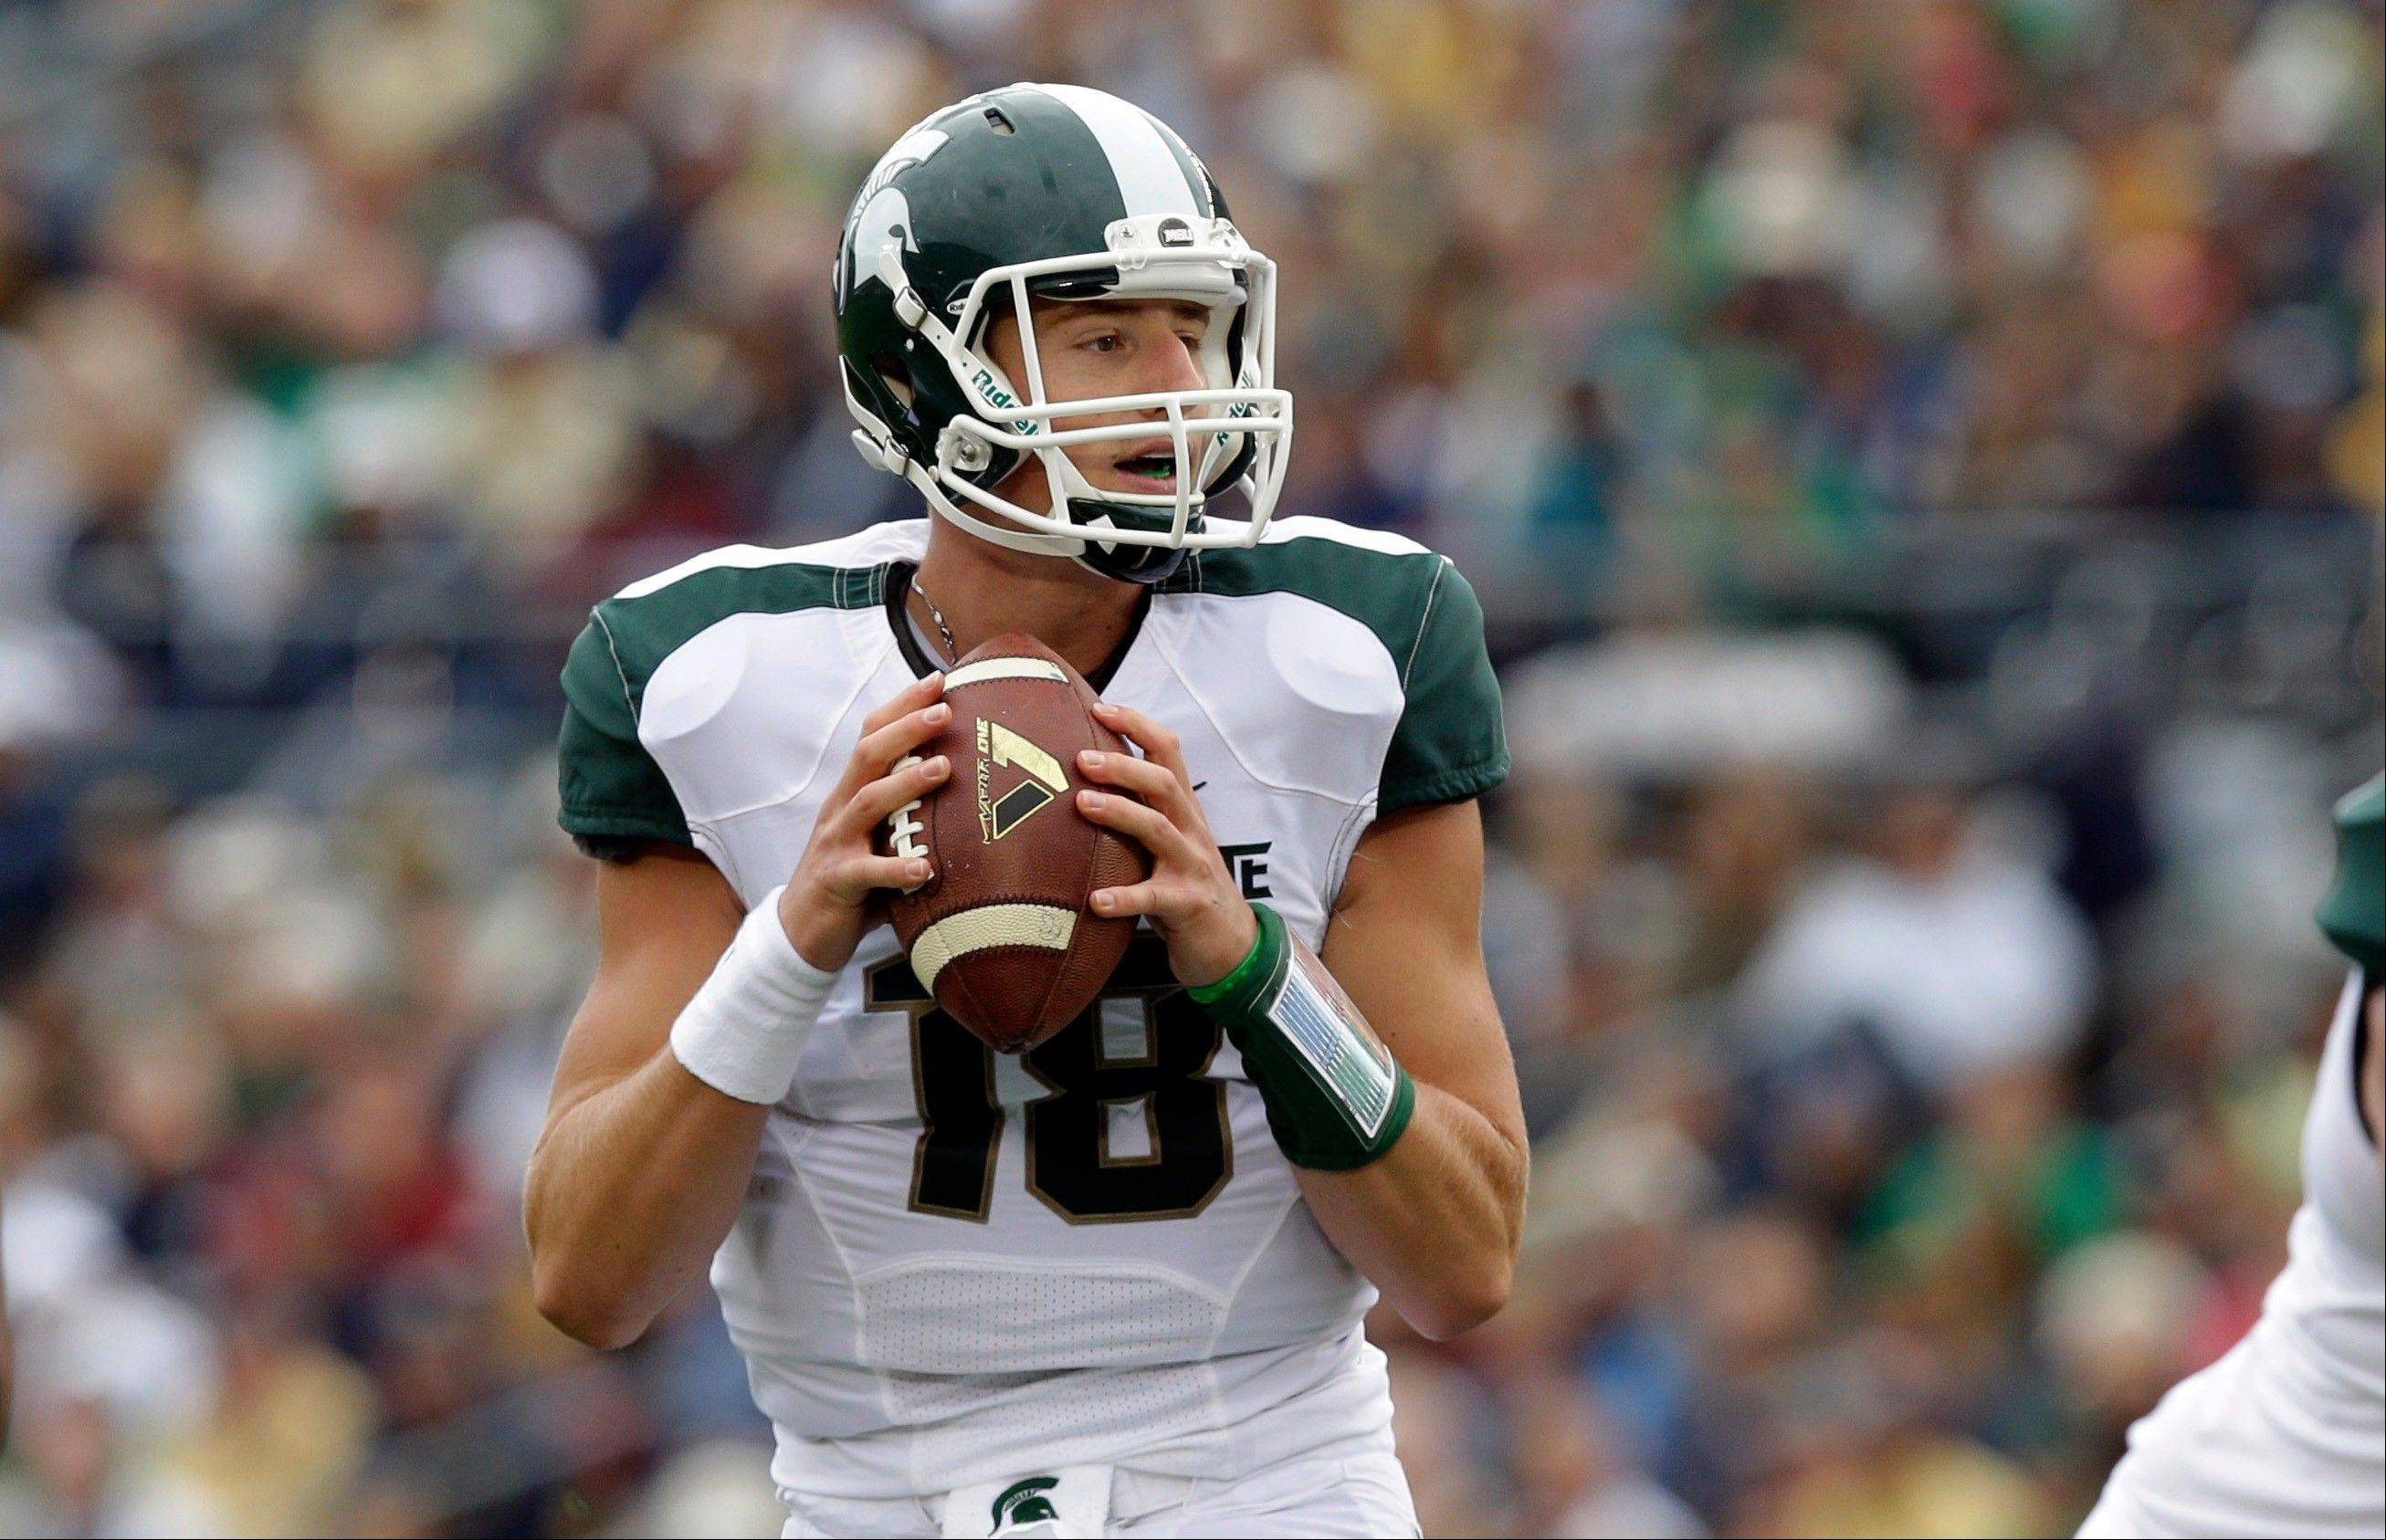 Michigan State quarterback Connor Cook throws against Notre Dame during the first half of last week�s game in South Bend, Ind.